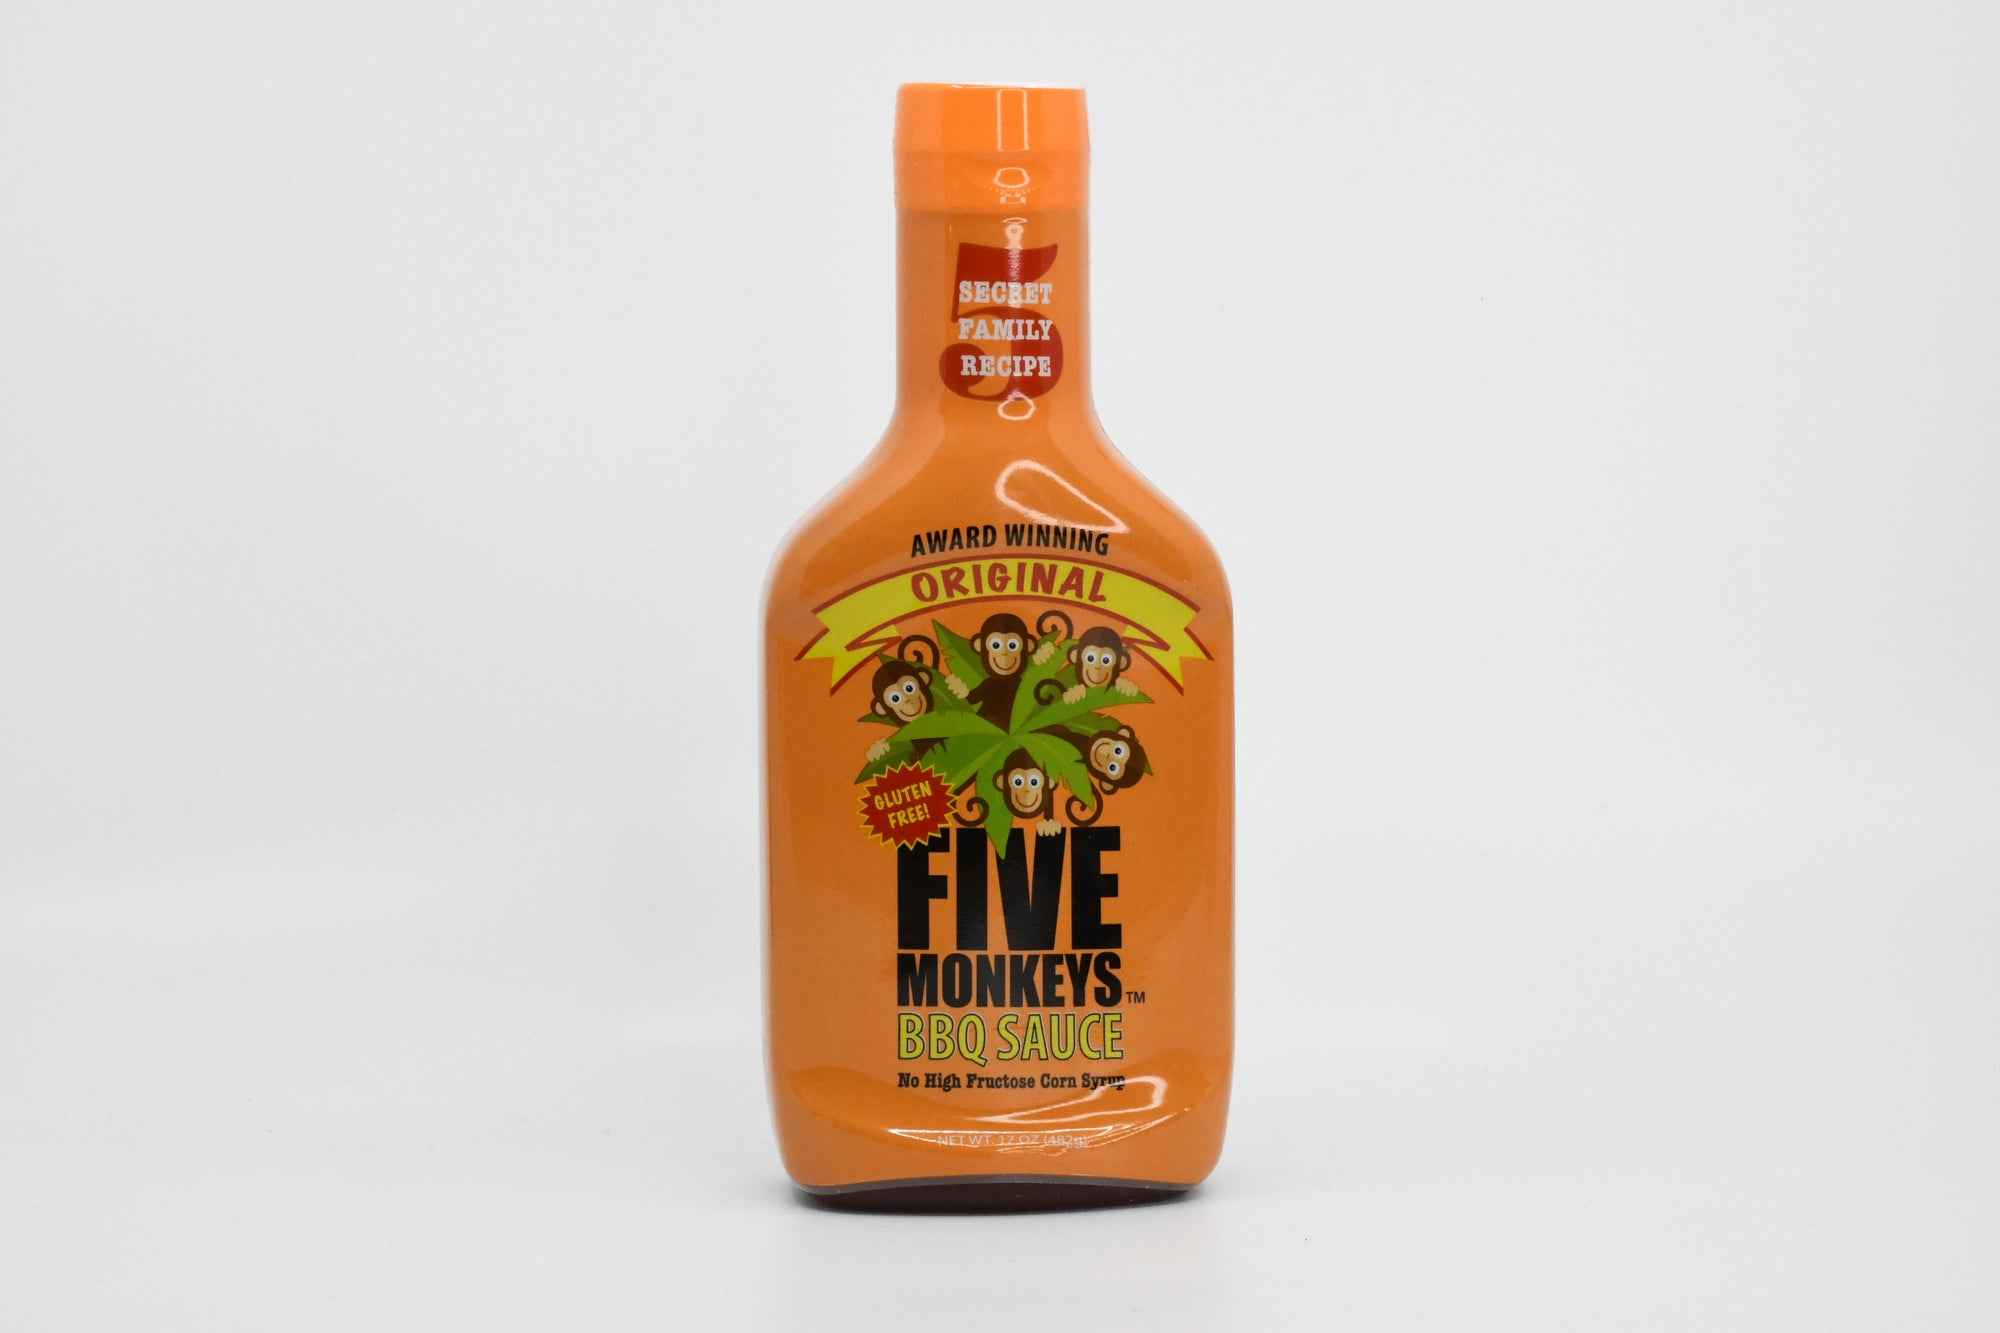 Five Monkeys Original